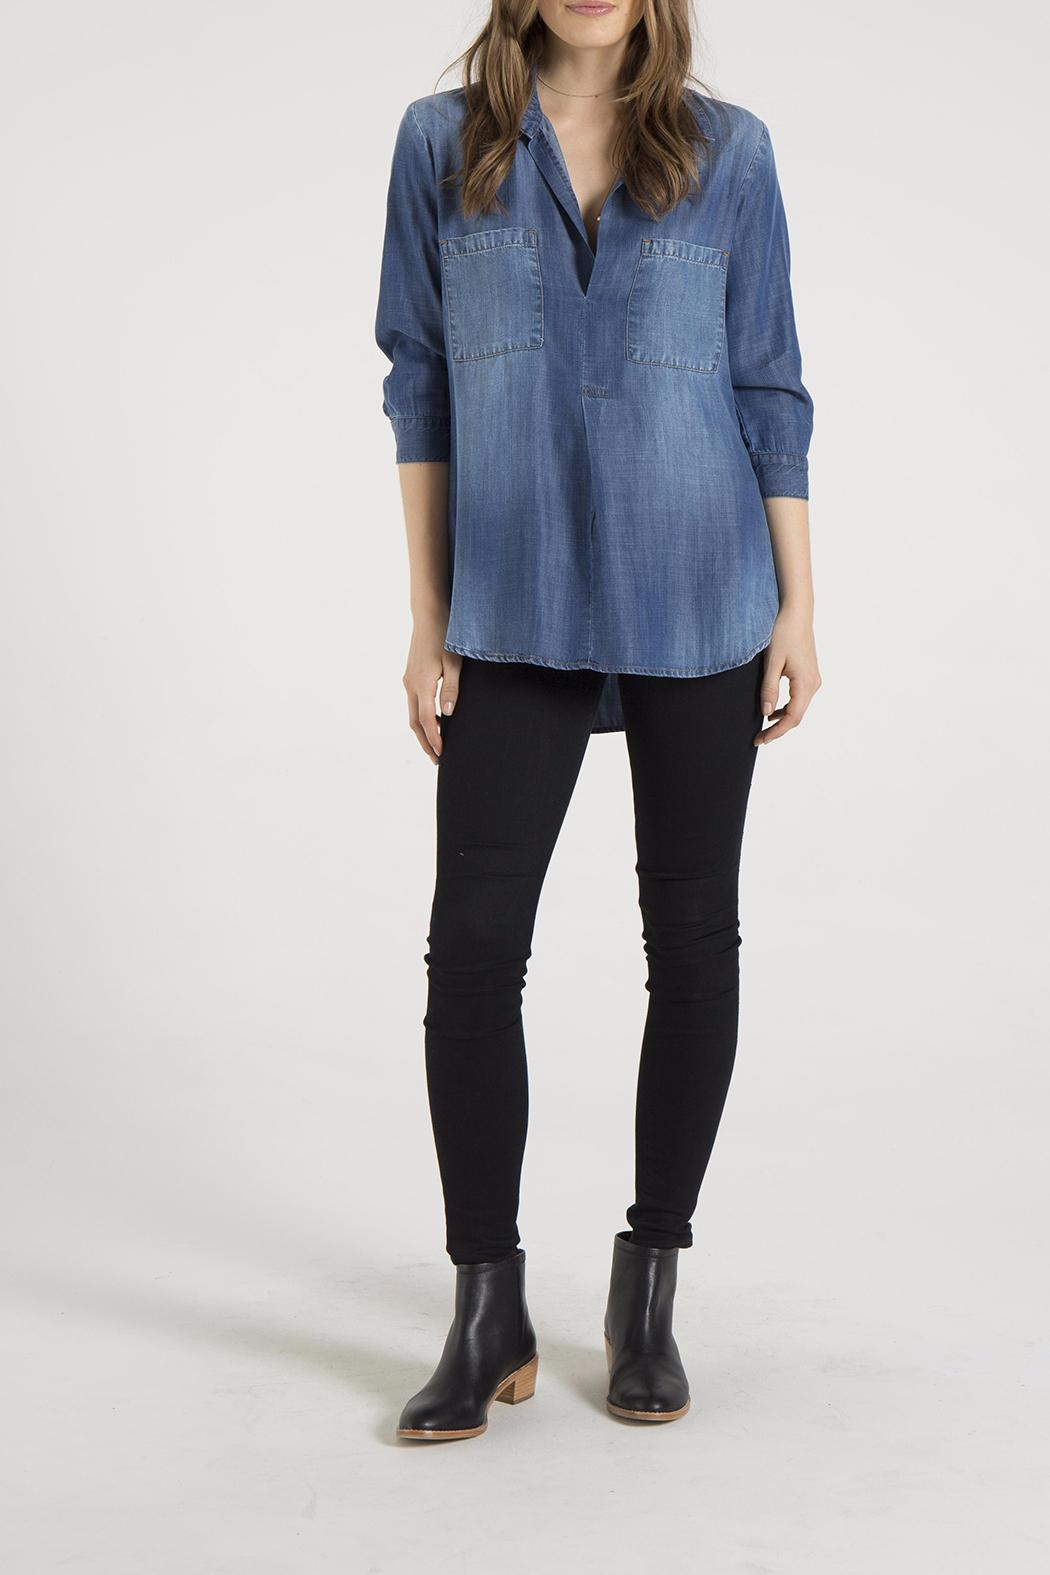 Bella Dahl Chambray Placket Pullover - Front Cropped Image